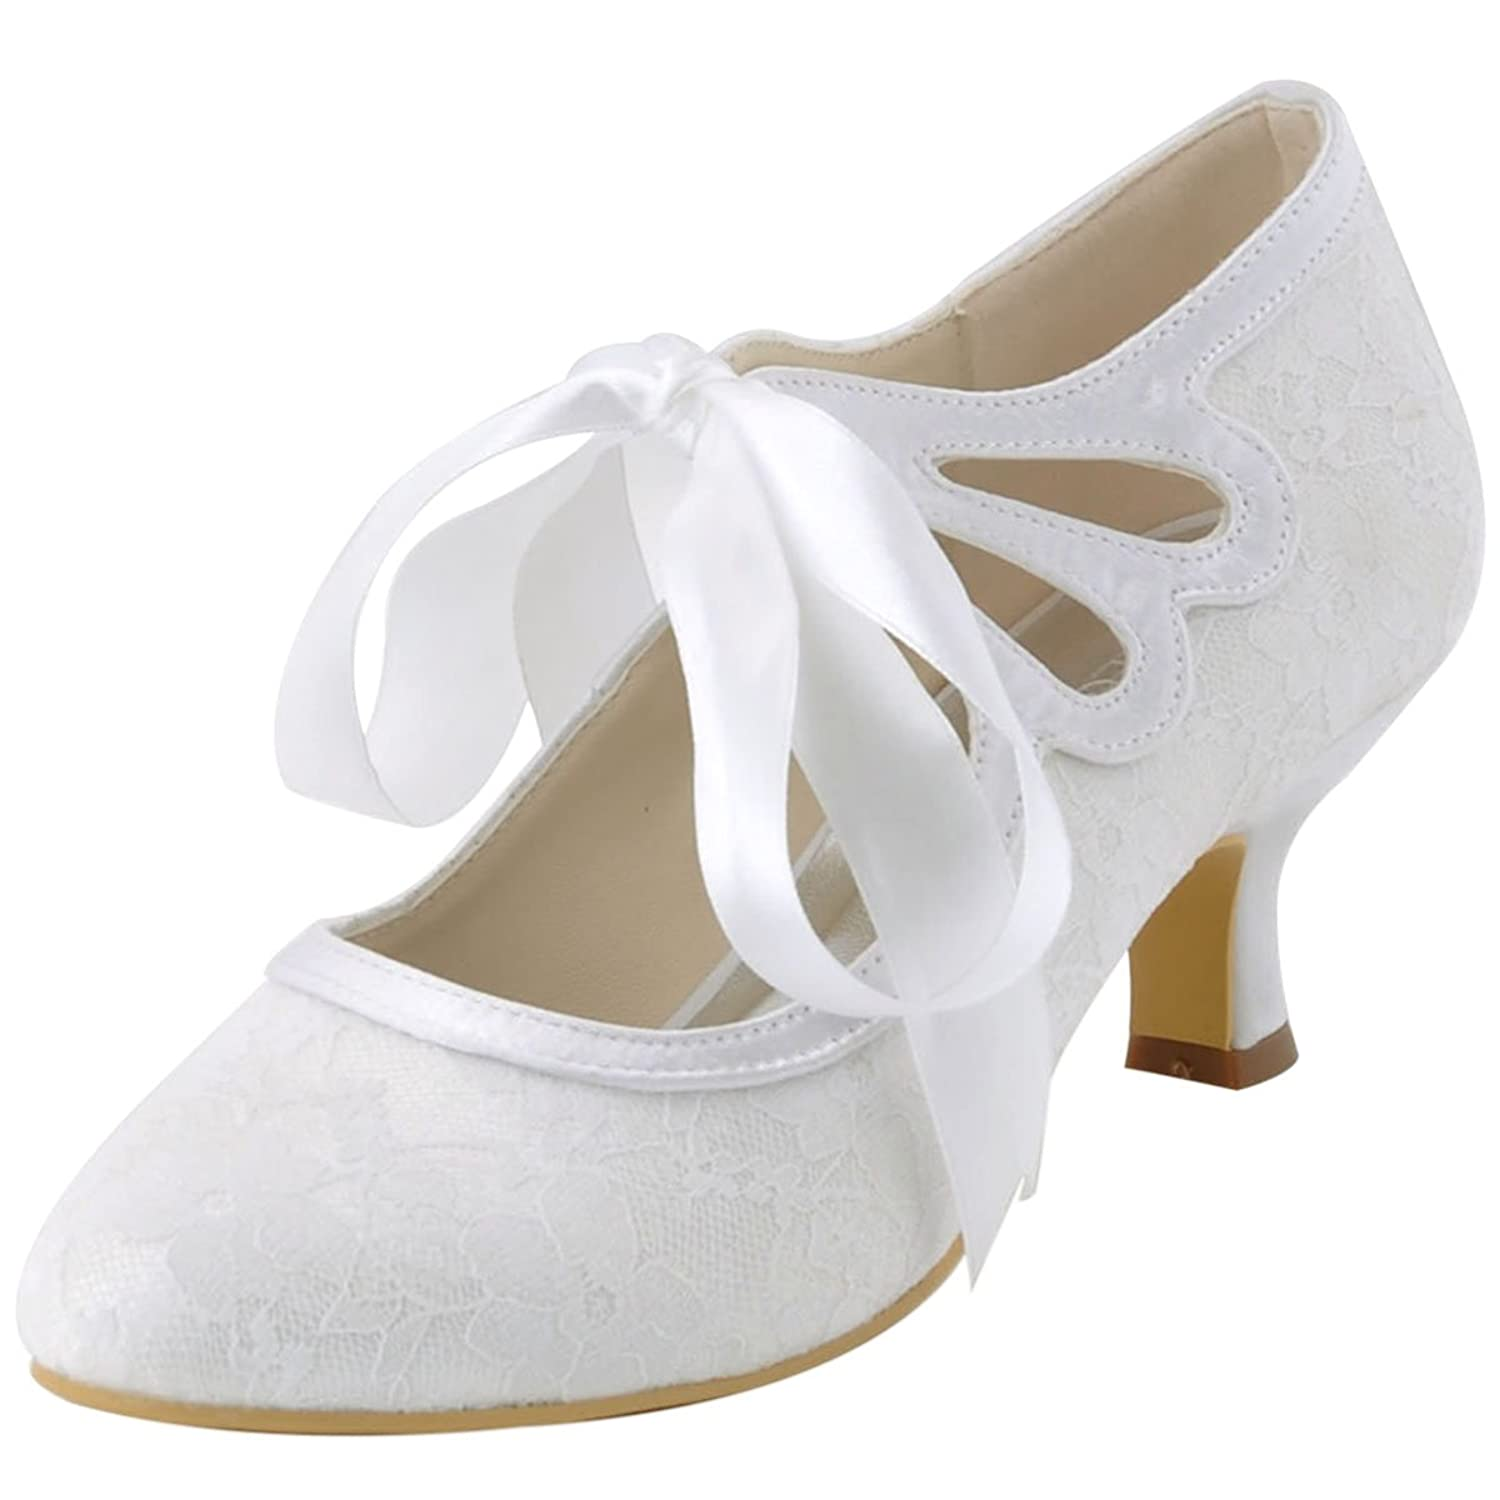 Titanic Shoes- Reproduction Shoes ElegantPark HC1521 Womens Mary Jane Closed Toe Low Heel Pumps Lace Wedding Dress Shoes $48.95 AT vintagedancer.com